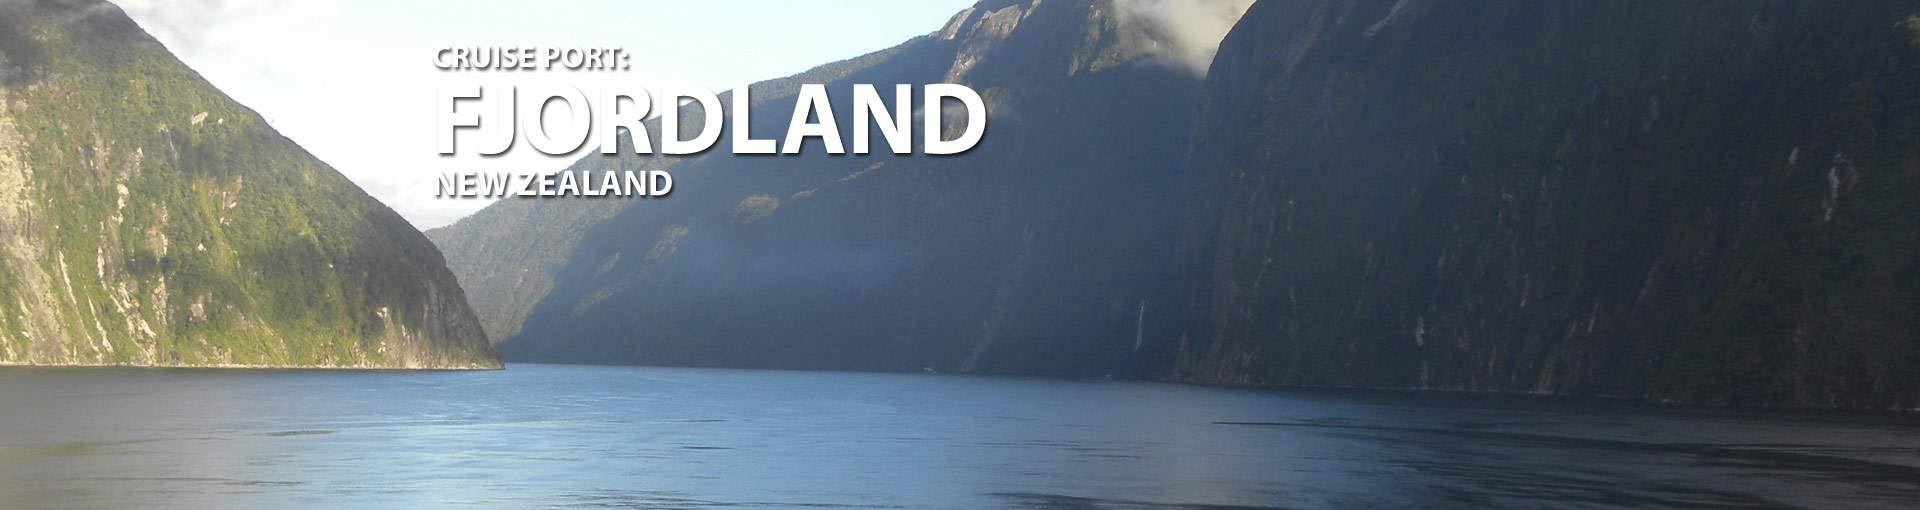 Fjordland, New Zealand Cruise Port